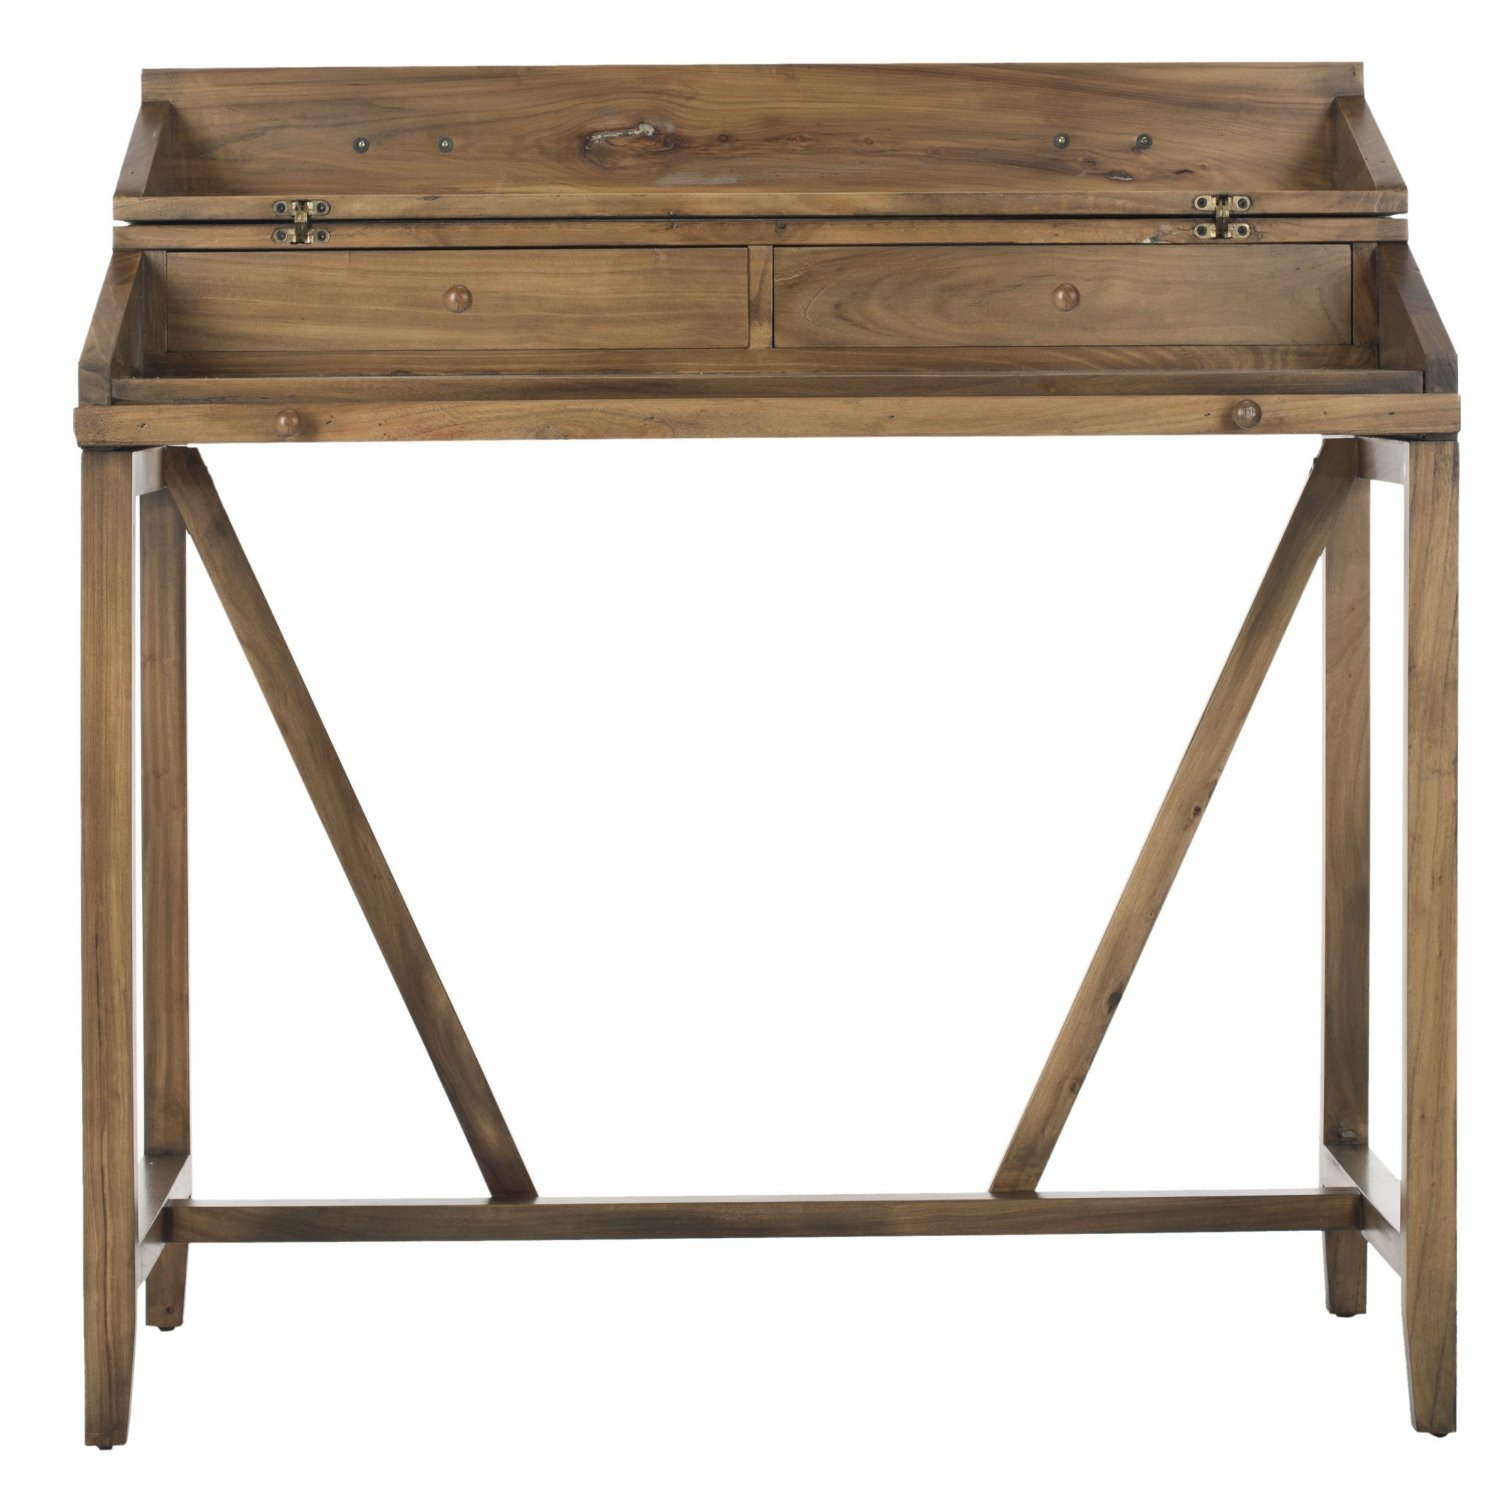 Wood secretary desk. Great idea for a dual purpose vanity and nightstand in a farmhouse bedroom. Farmhouse Bedroom Design. Create a romantic bedroom with this french country farmhouse bedroom decor. Go to theweatheredfox.com to buy farmhouse bedroom products and decor!